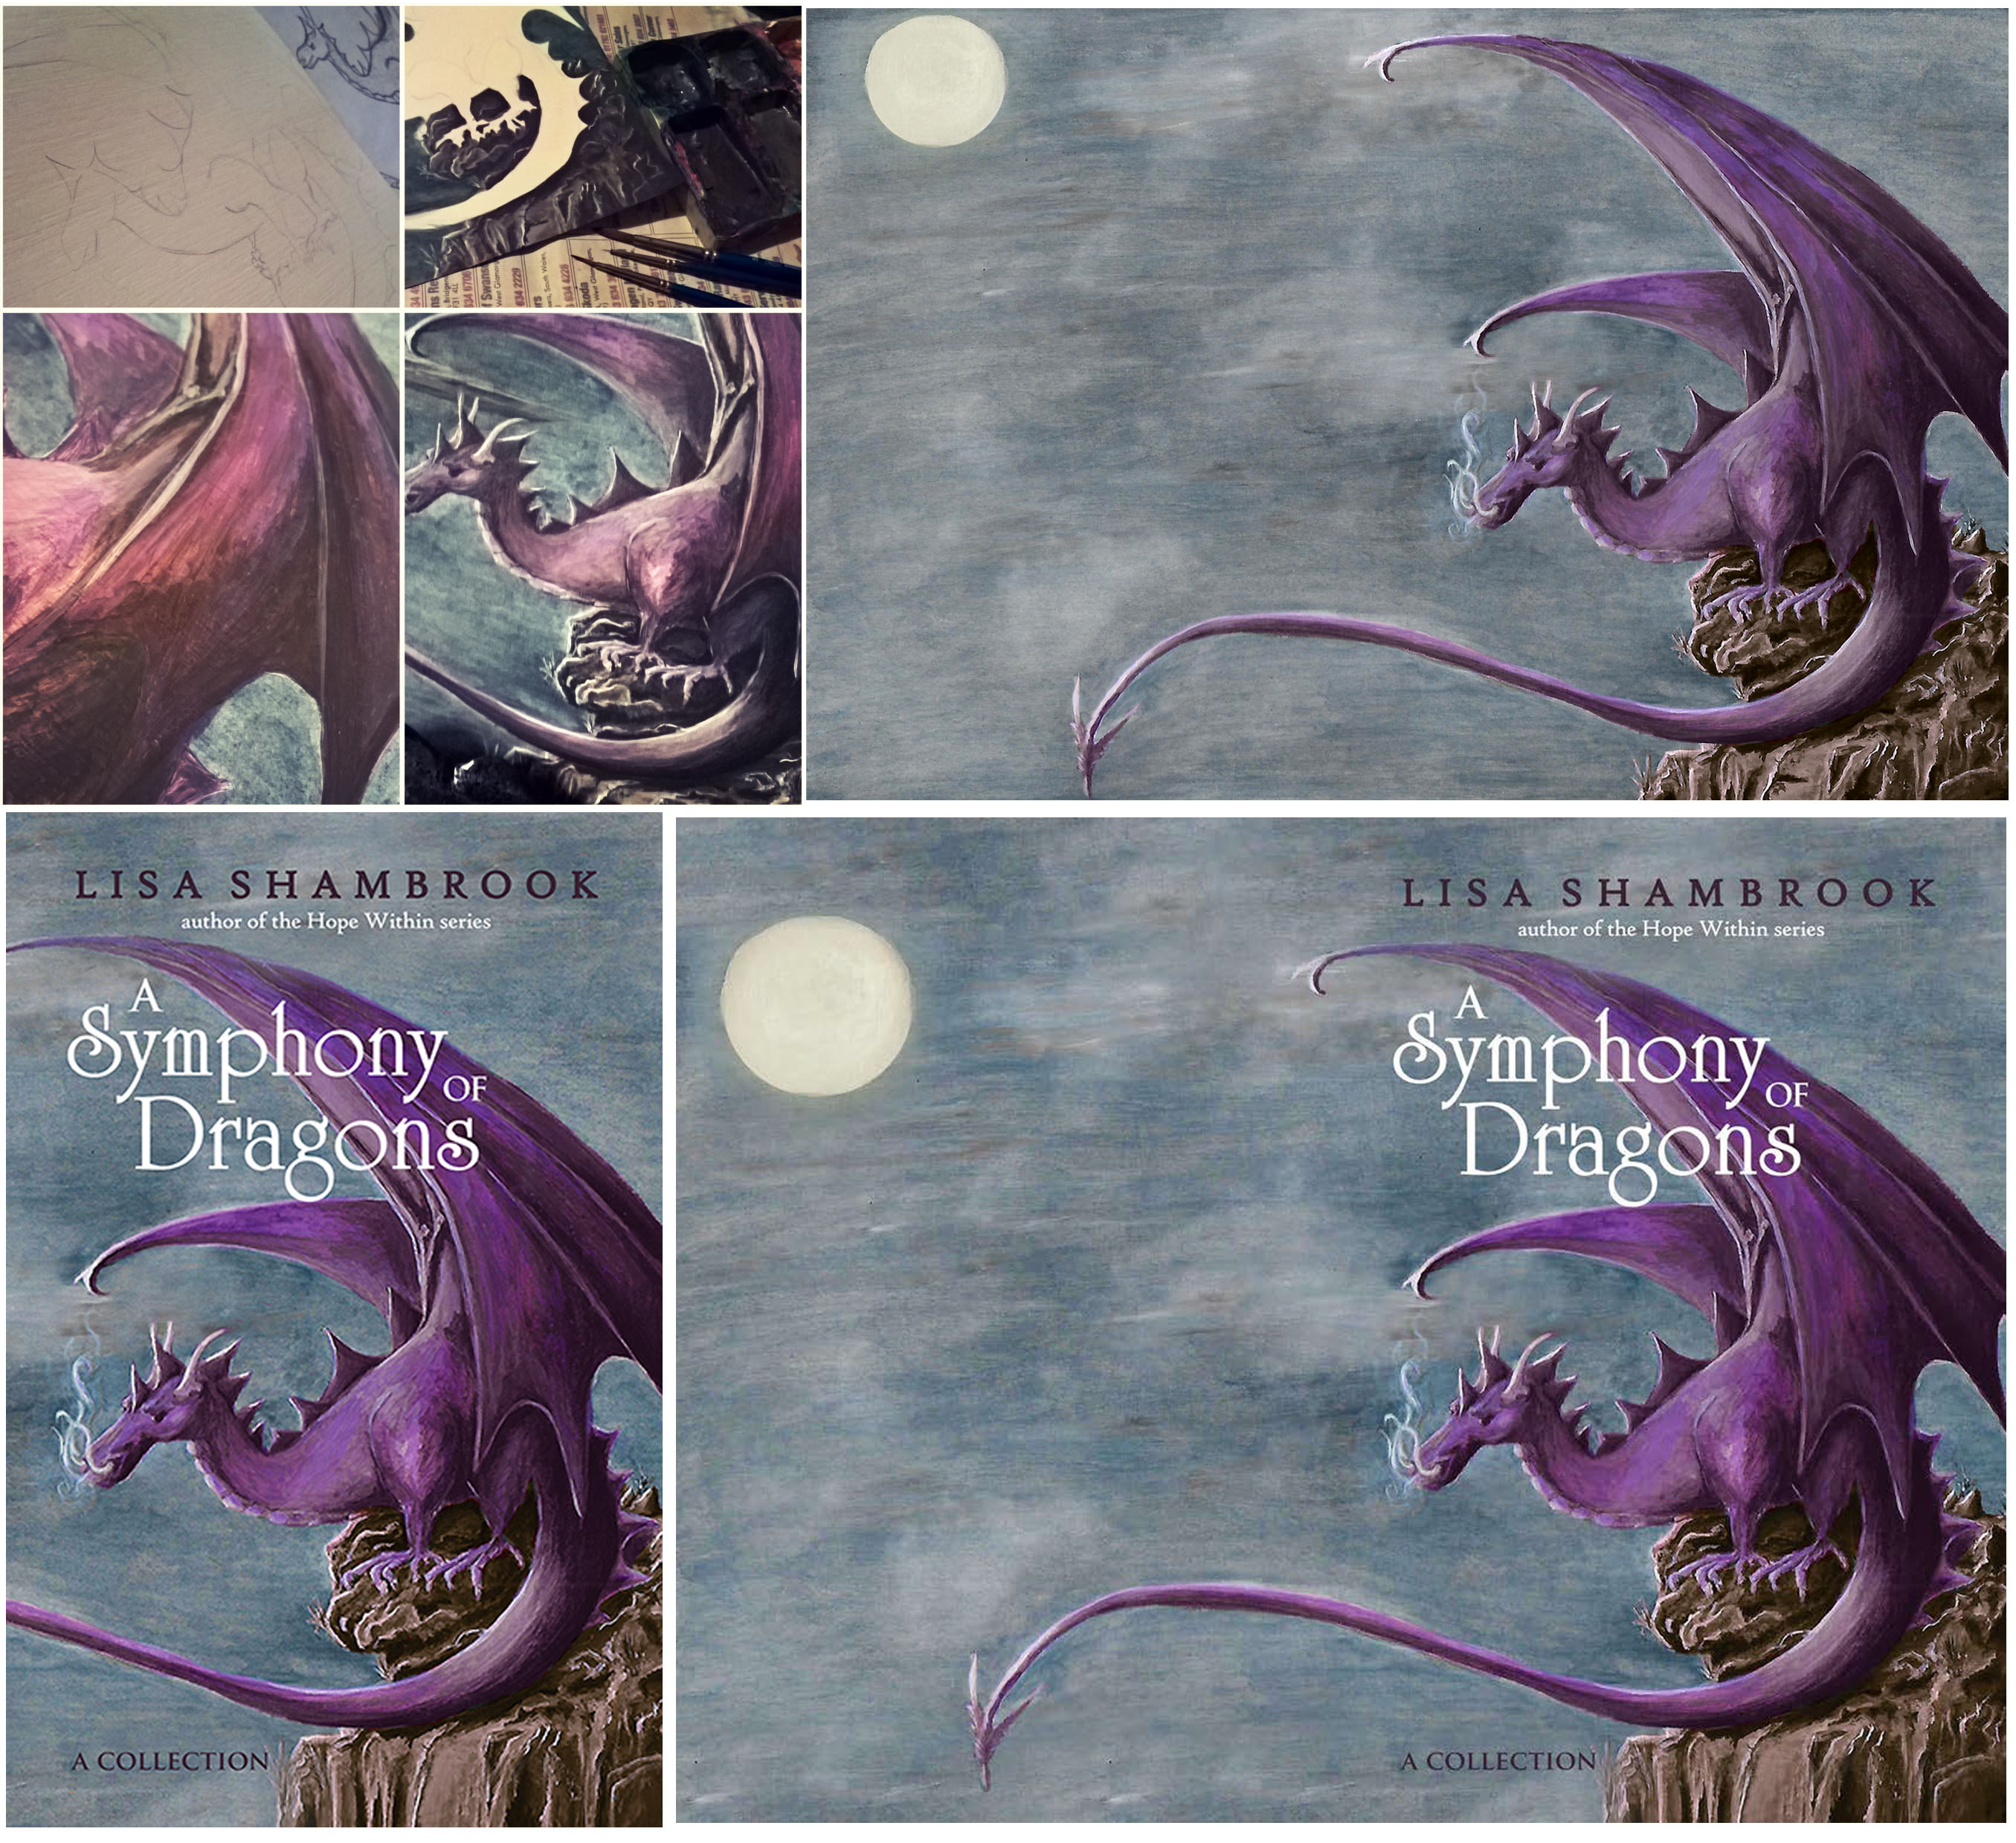 A Symphony of Dragons Cover Art Evolution - from sketch to painting to cover © Lisa Shambrook